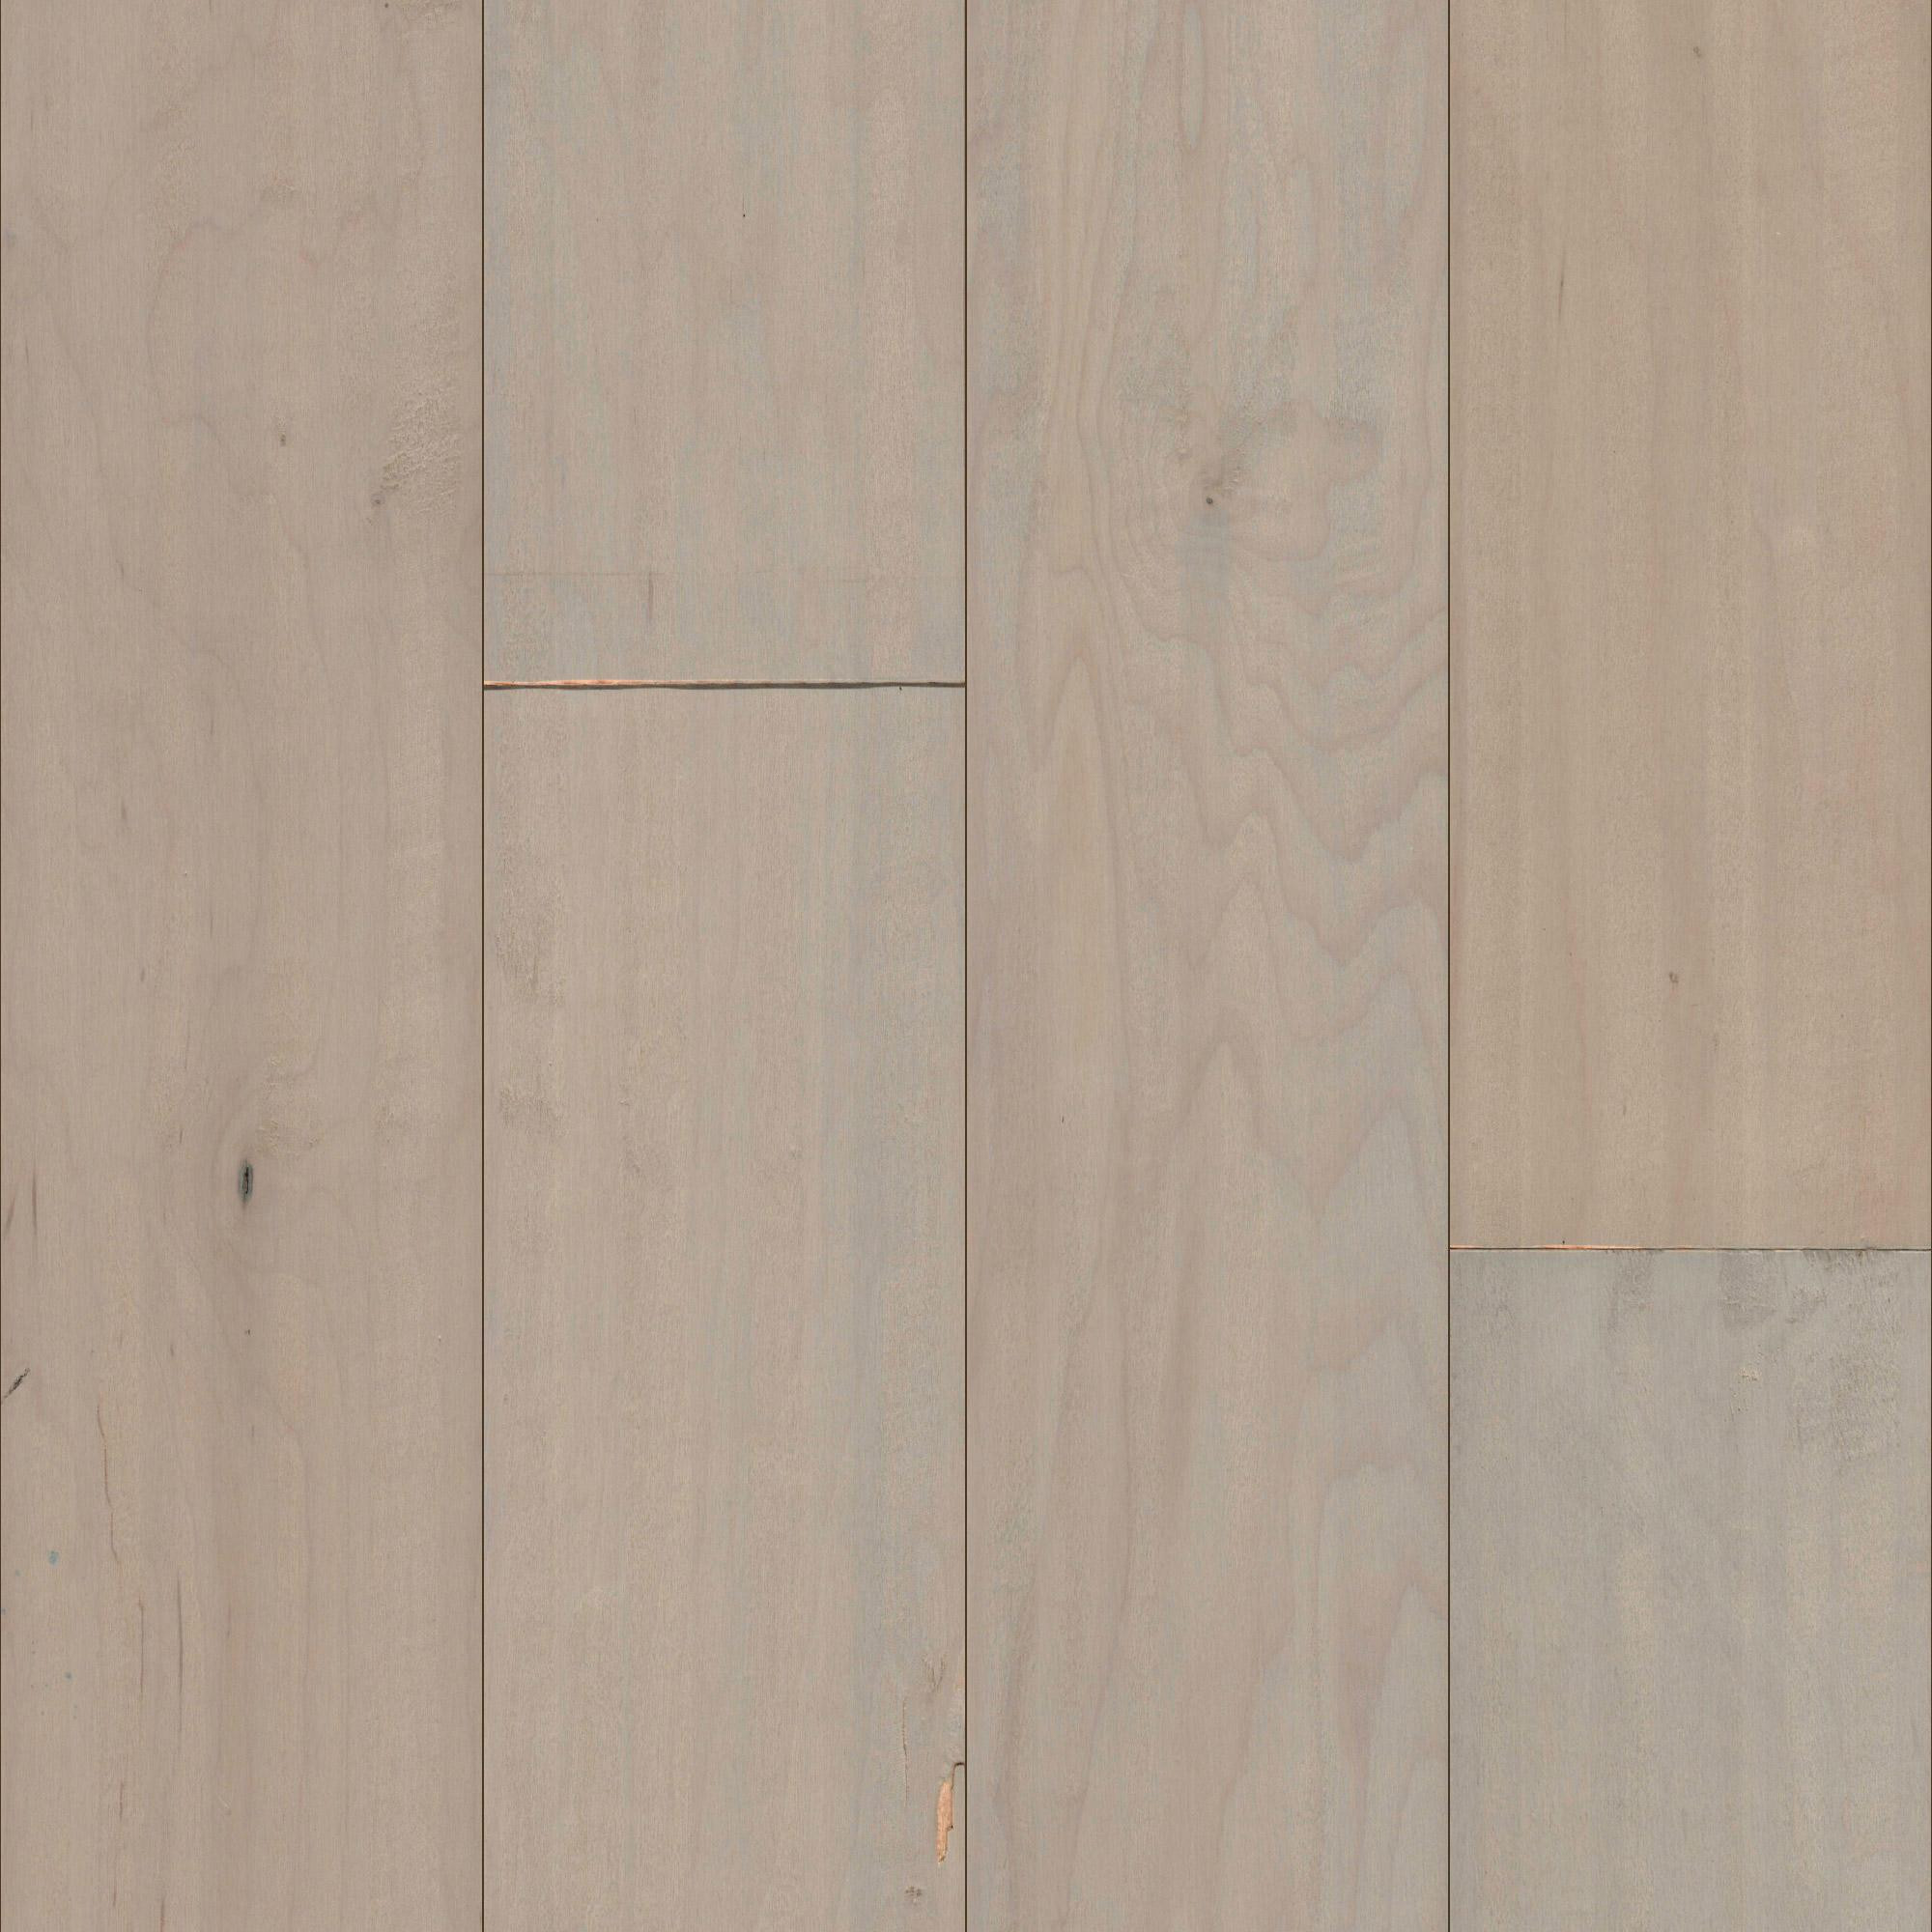 Mohawk Hardwood Flooring Prices Of Mullican Lincolnshire Sculpted Maple Frost 5 Engineered Hardwood Throughout Mullican Lincolnshire Sculpted Maple Frost 5 Engineered Hardwood Flooring